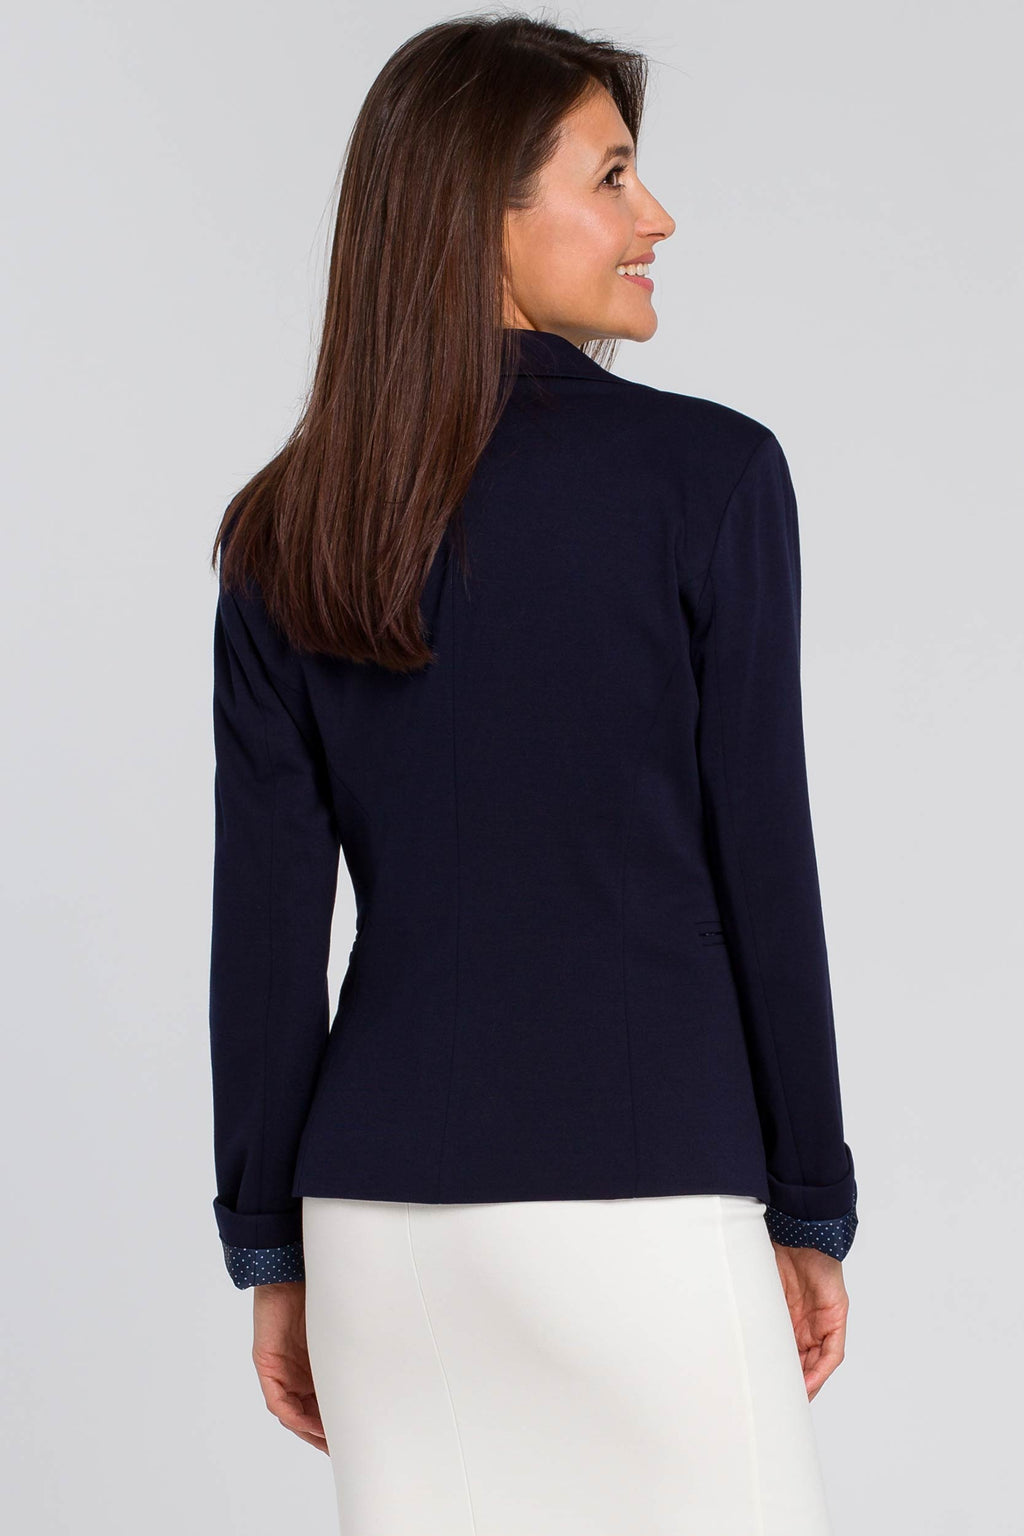 Navy Blue Cotton Blazer With Dotted Lining - So Chic Boutique